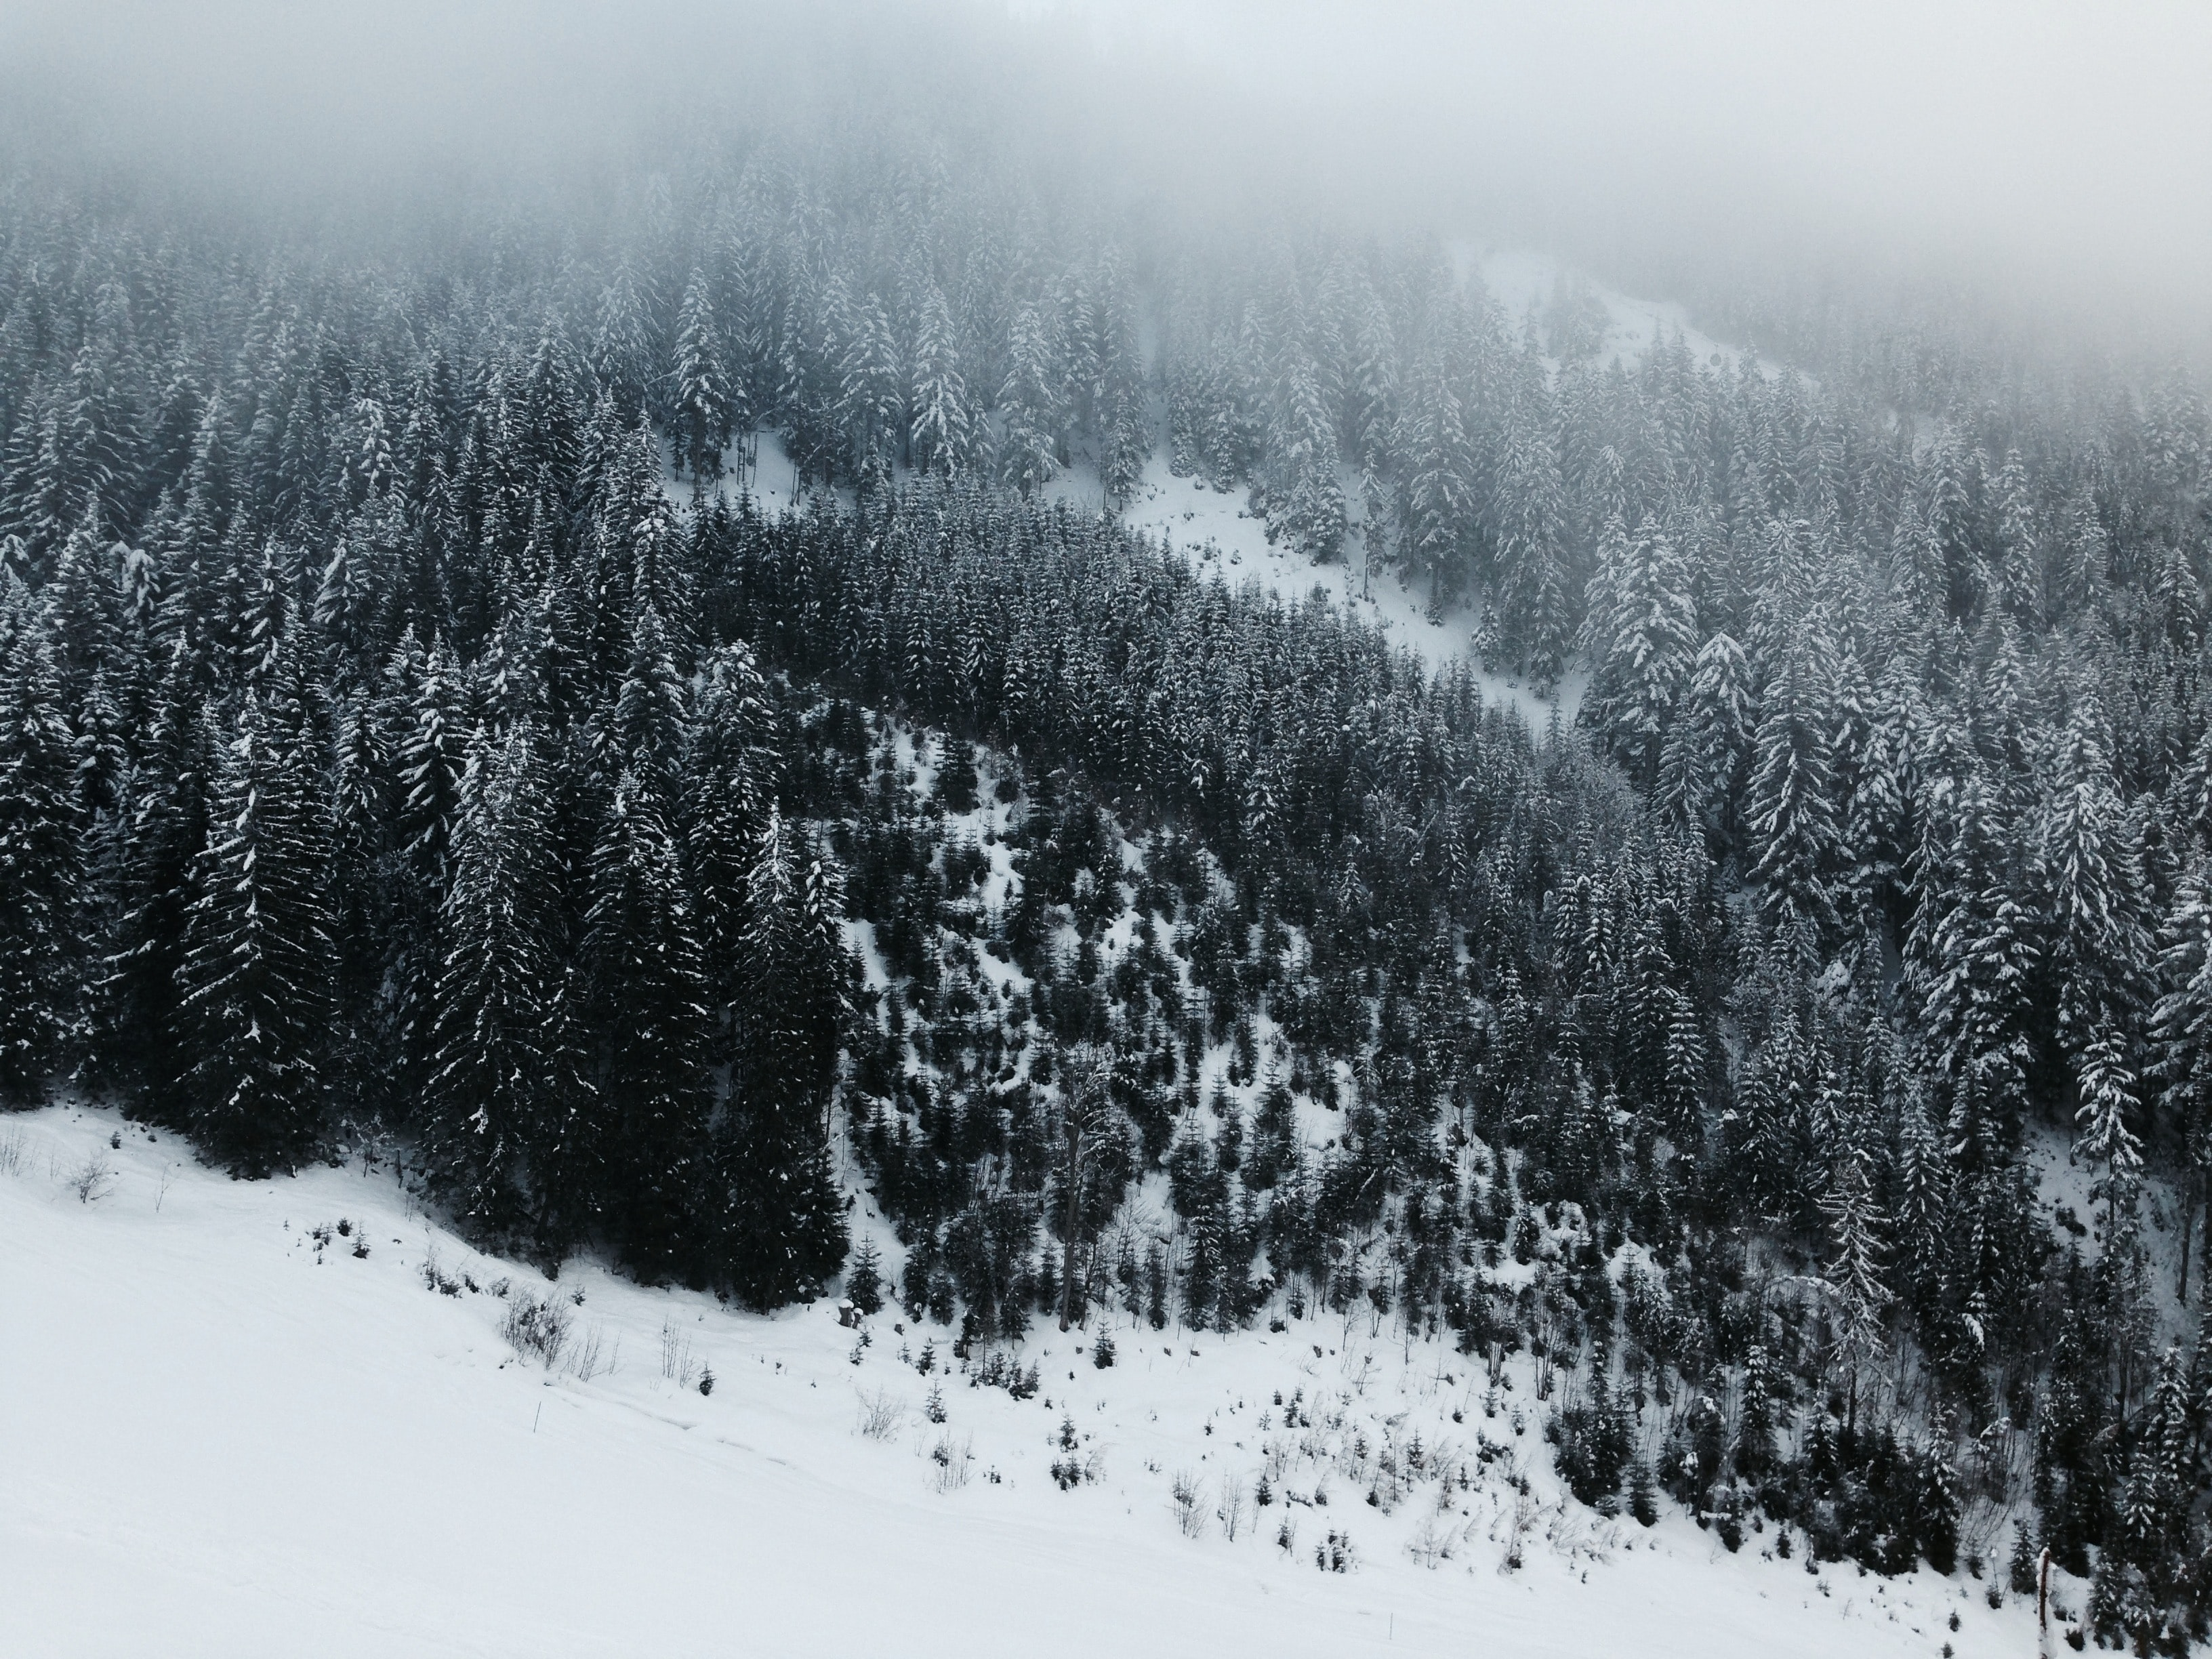 Snow-covered forest in Austria with fog